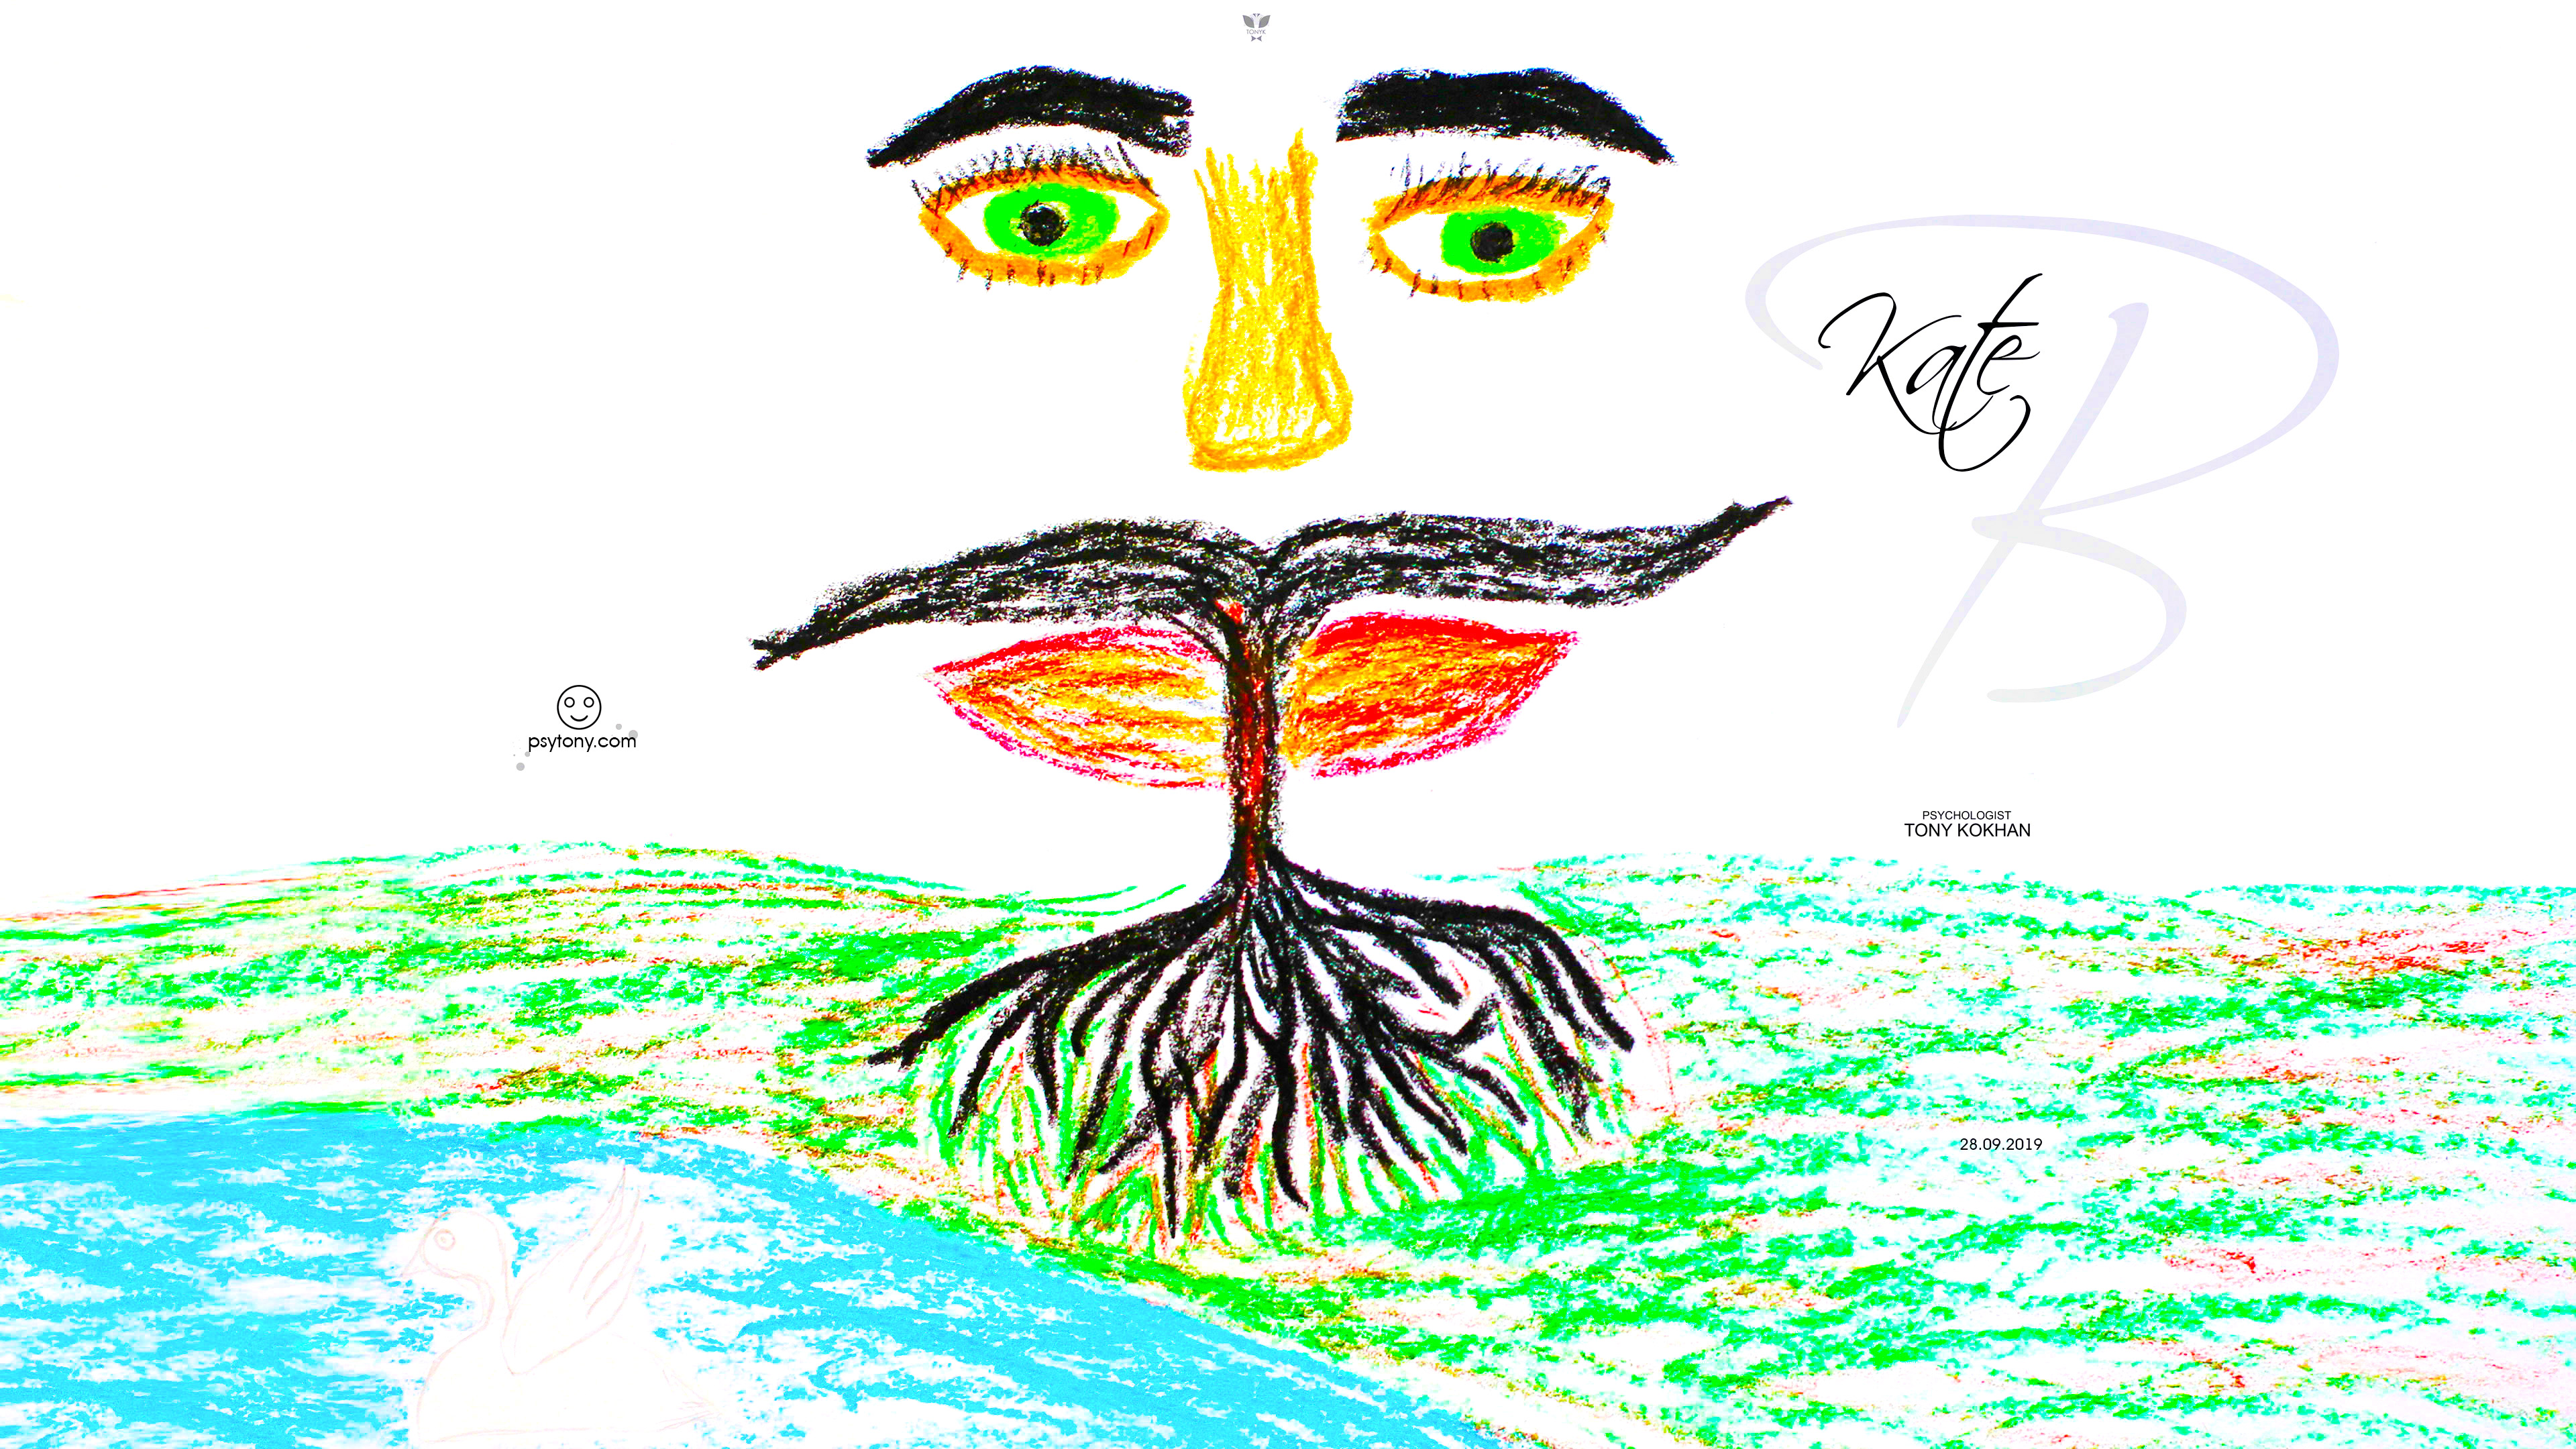 Ekaterina-Soul-Girl-Tree-of-Life-Man-Energy-Face-Mustache-Eyes-Picture-Drawing-with-Pastel-2019-Multicolors-4K-Wallpapers-by-Psychologist-Tony-Kokhan-www.psytony.com-image